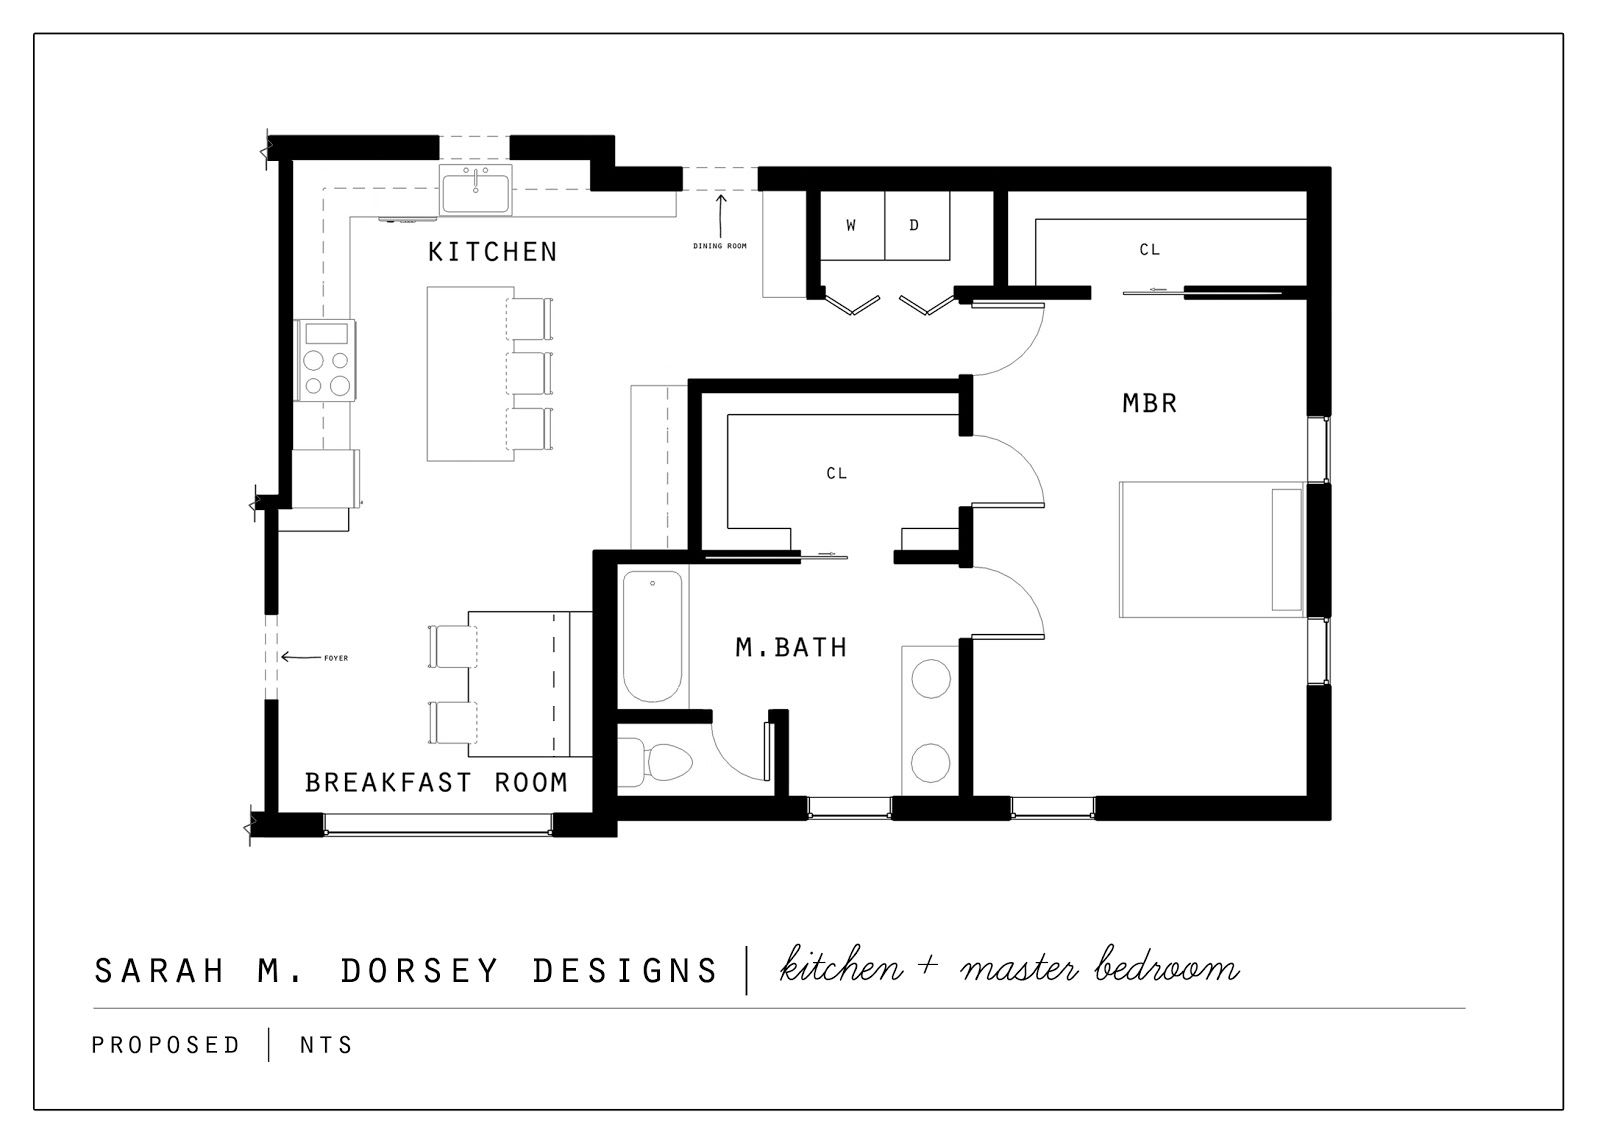 Floor plans for master bedroom additions bedroom addition plans master bedroom suite addition Master bedroom bathroom layout